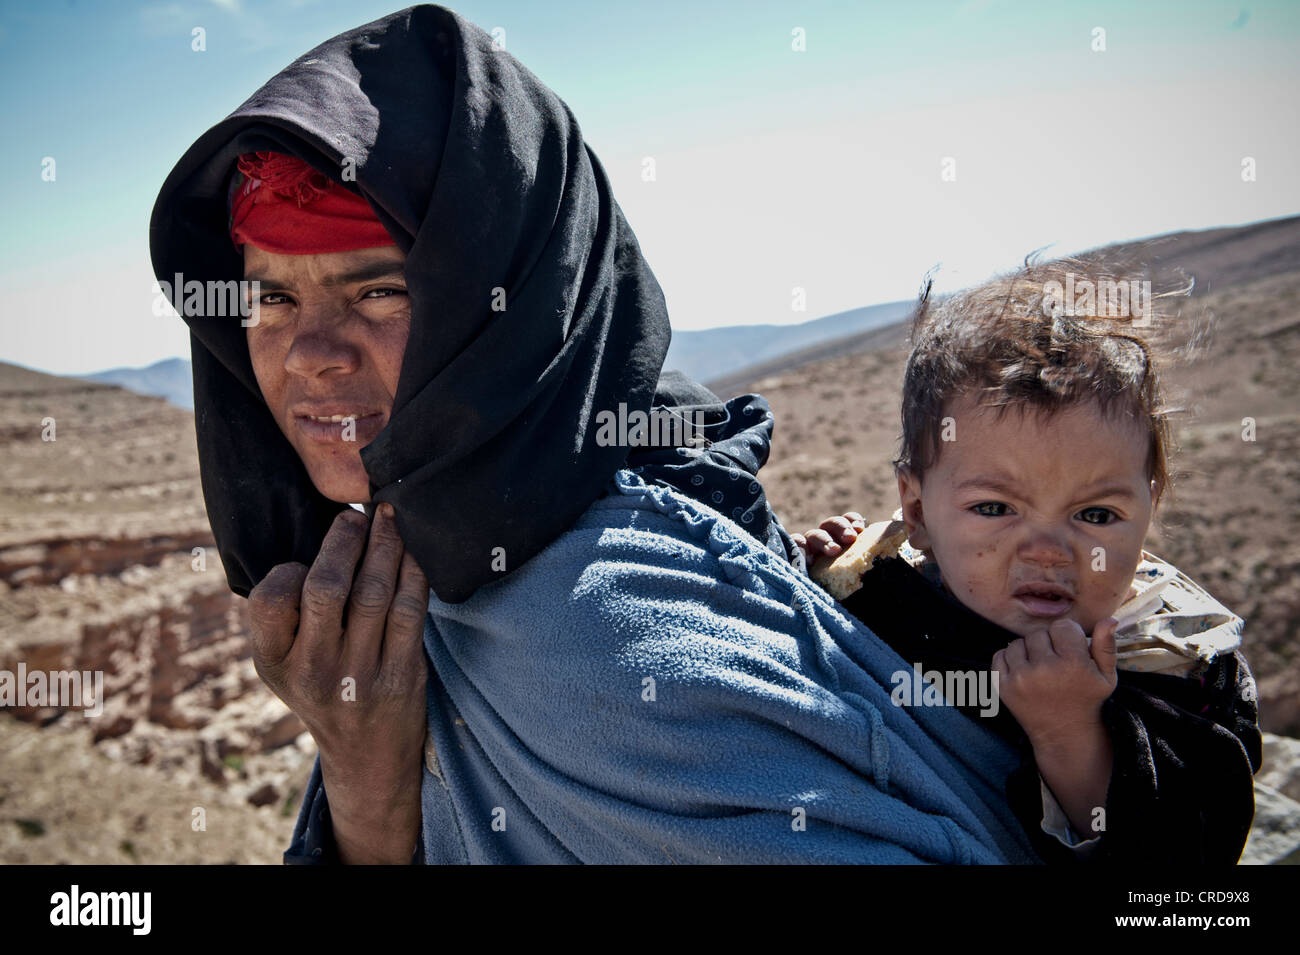 Nomad Berber mother carrying her baby Atlas Mountains, Morocco - Stock Image